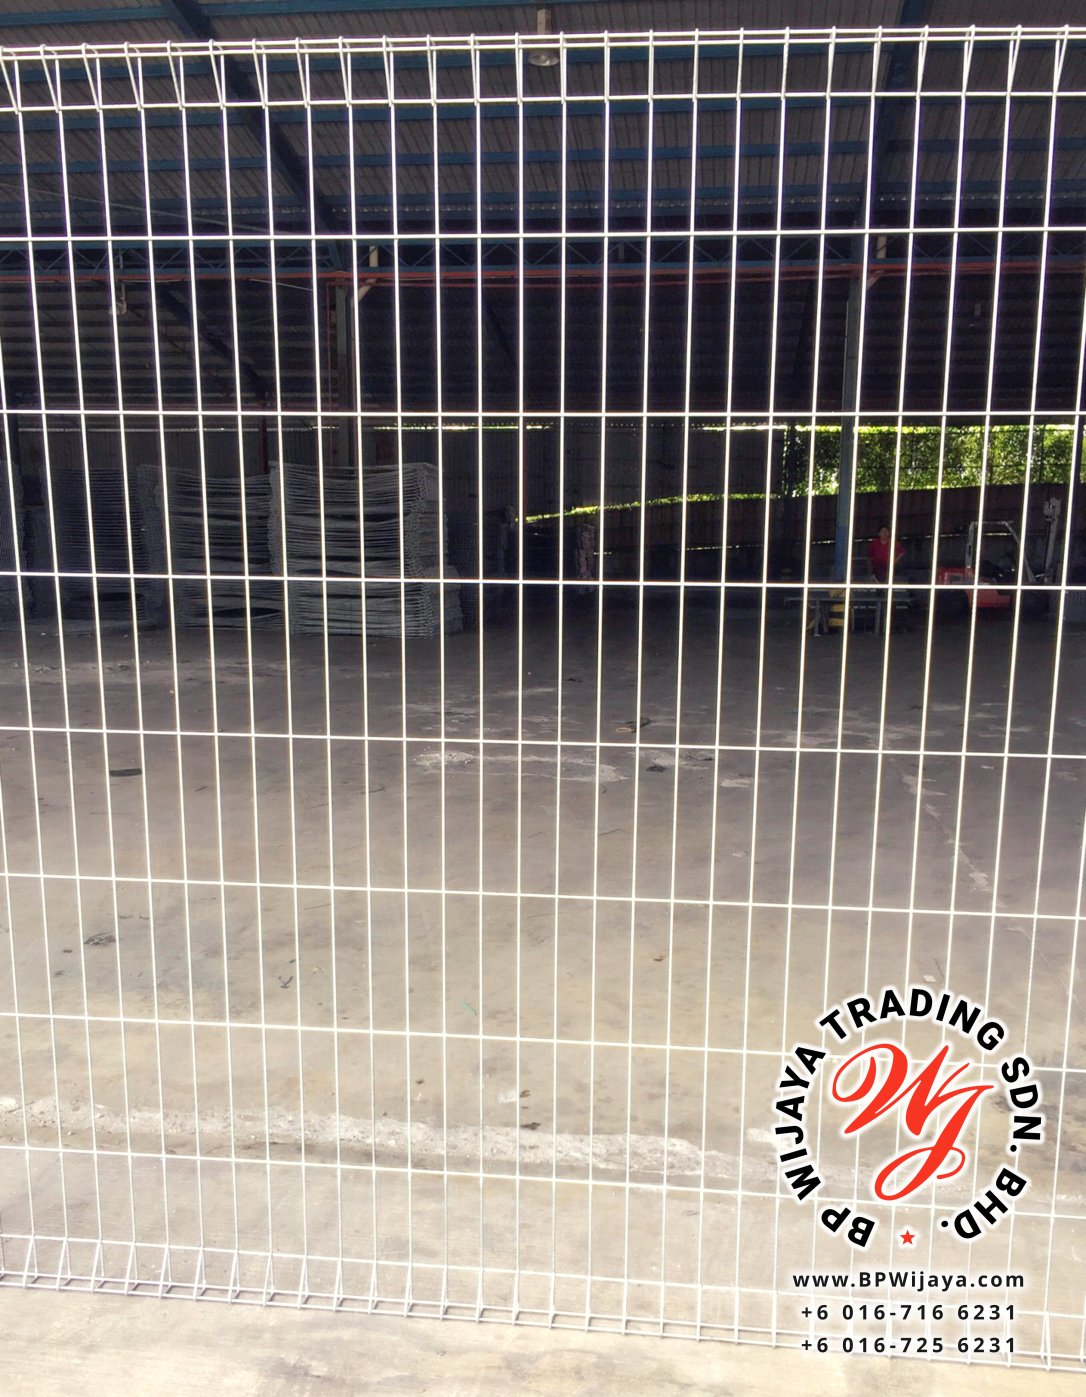 BP Wijaya Trading Sdn Bhd Malaysia Johor Batu Pahat manufacturer of safety fences building materials Hotdip Galvanized Fence Mesh Wire Fence FB BRC B09